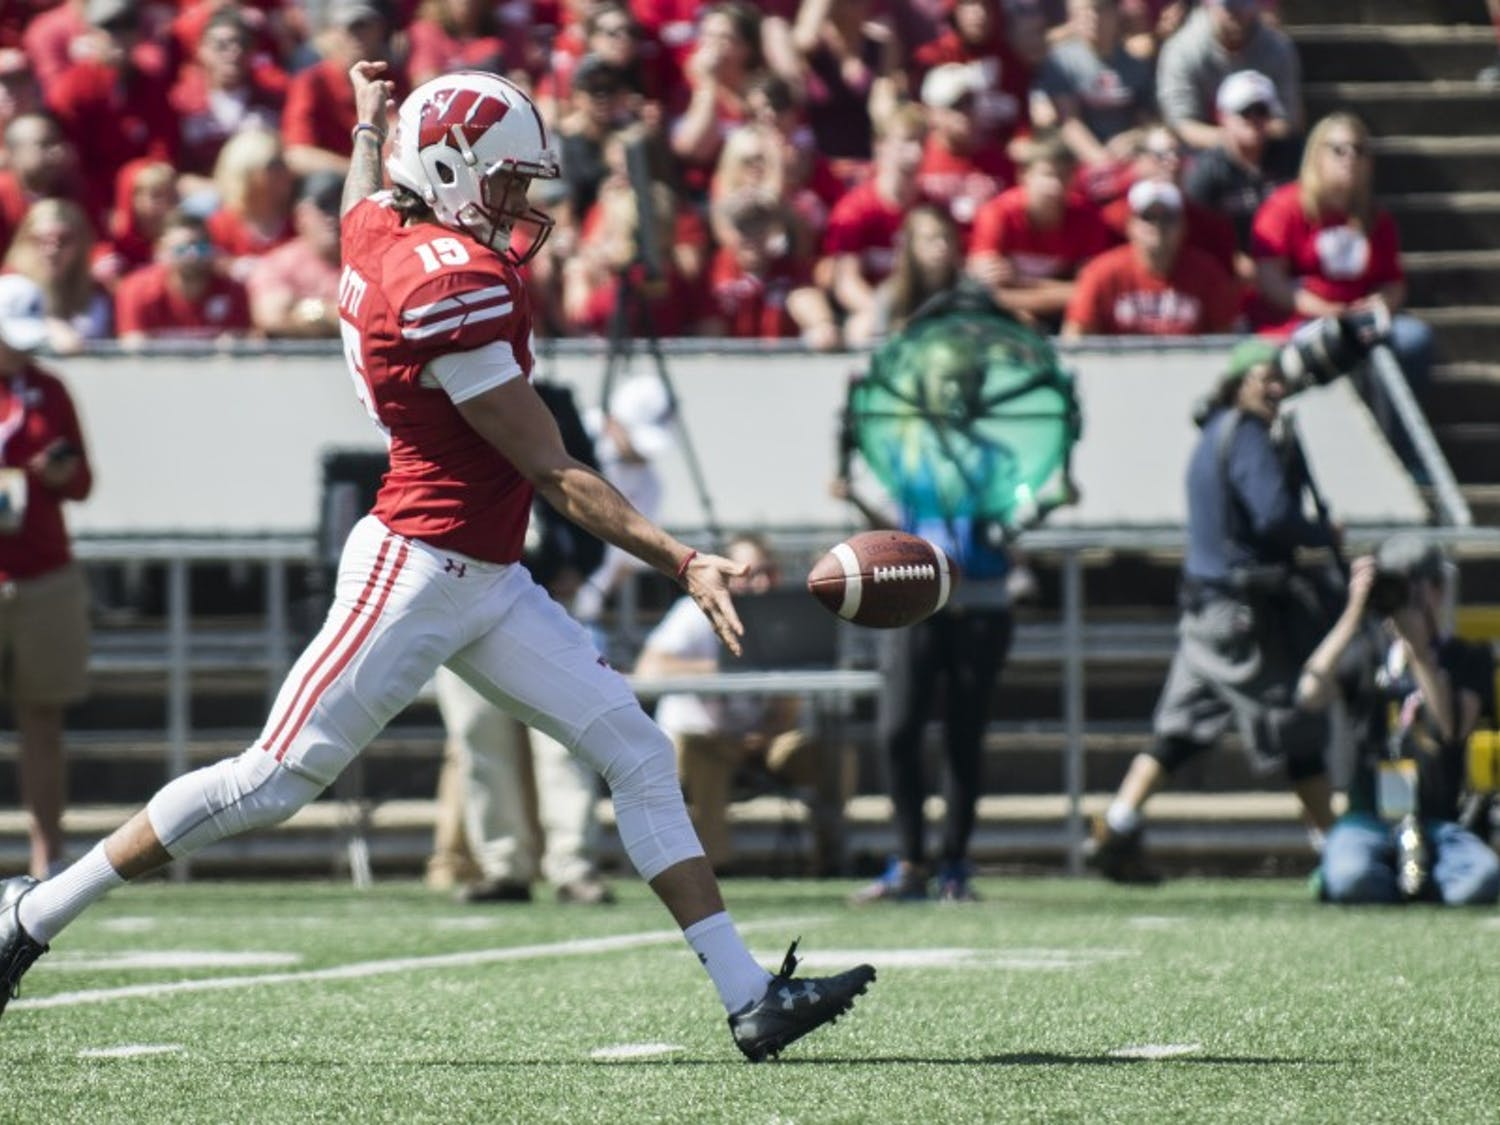 Anthony Lotti was the unsung hero for the Badgers against Iowa, averaging 43.6 yards on five punts.